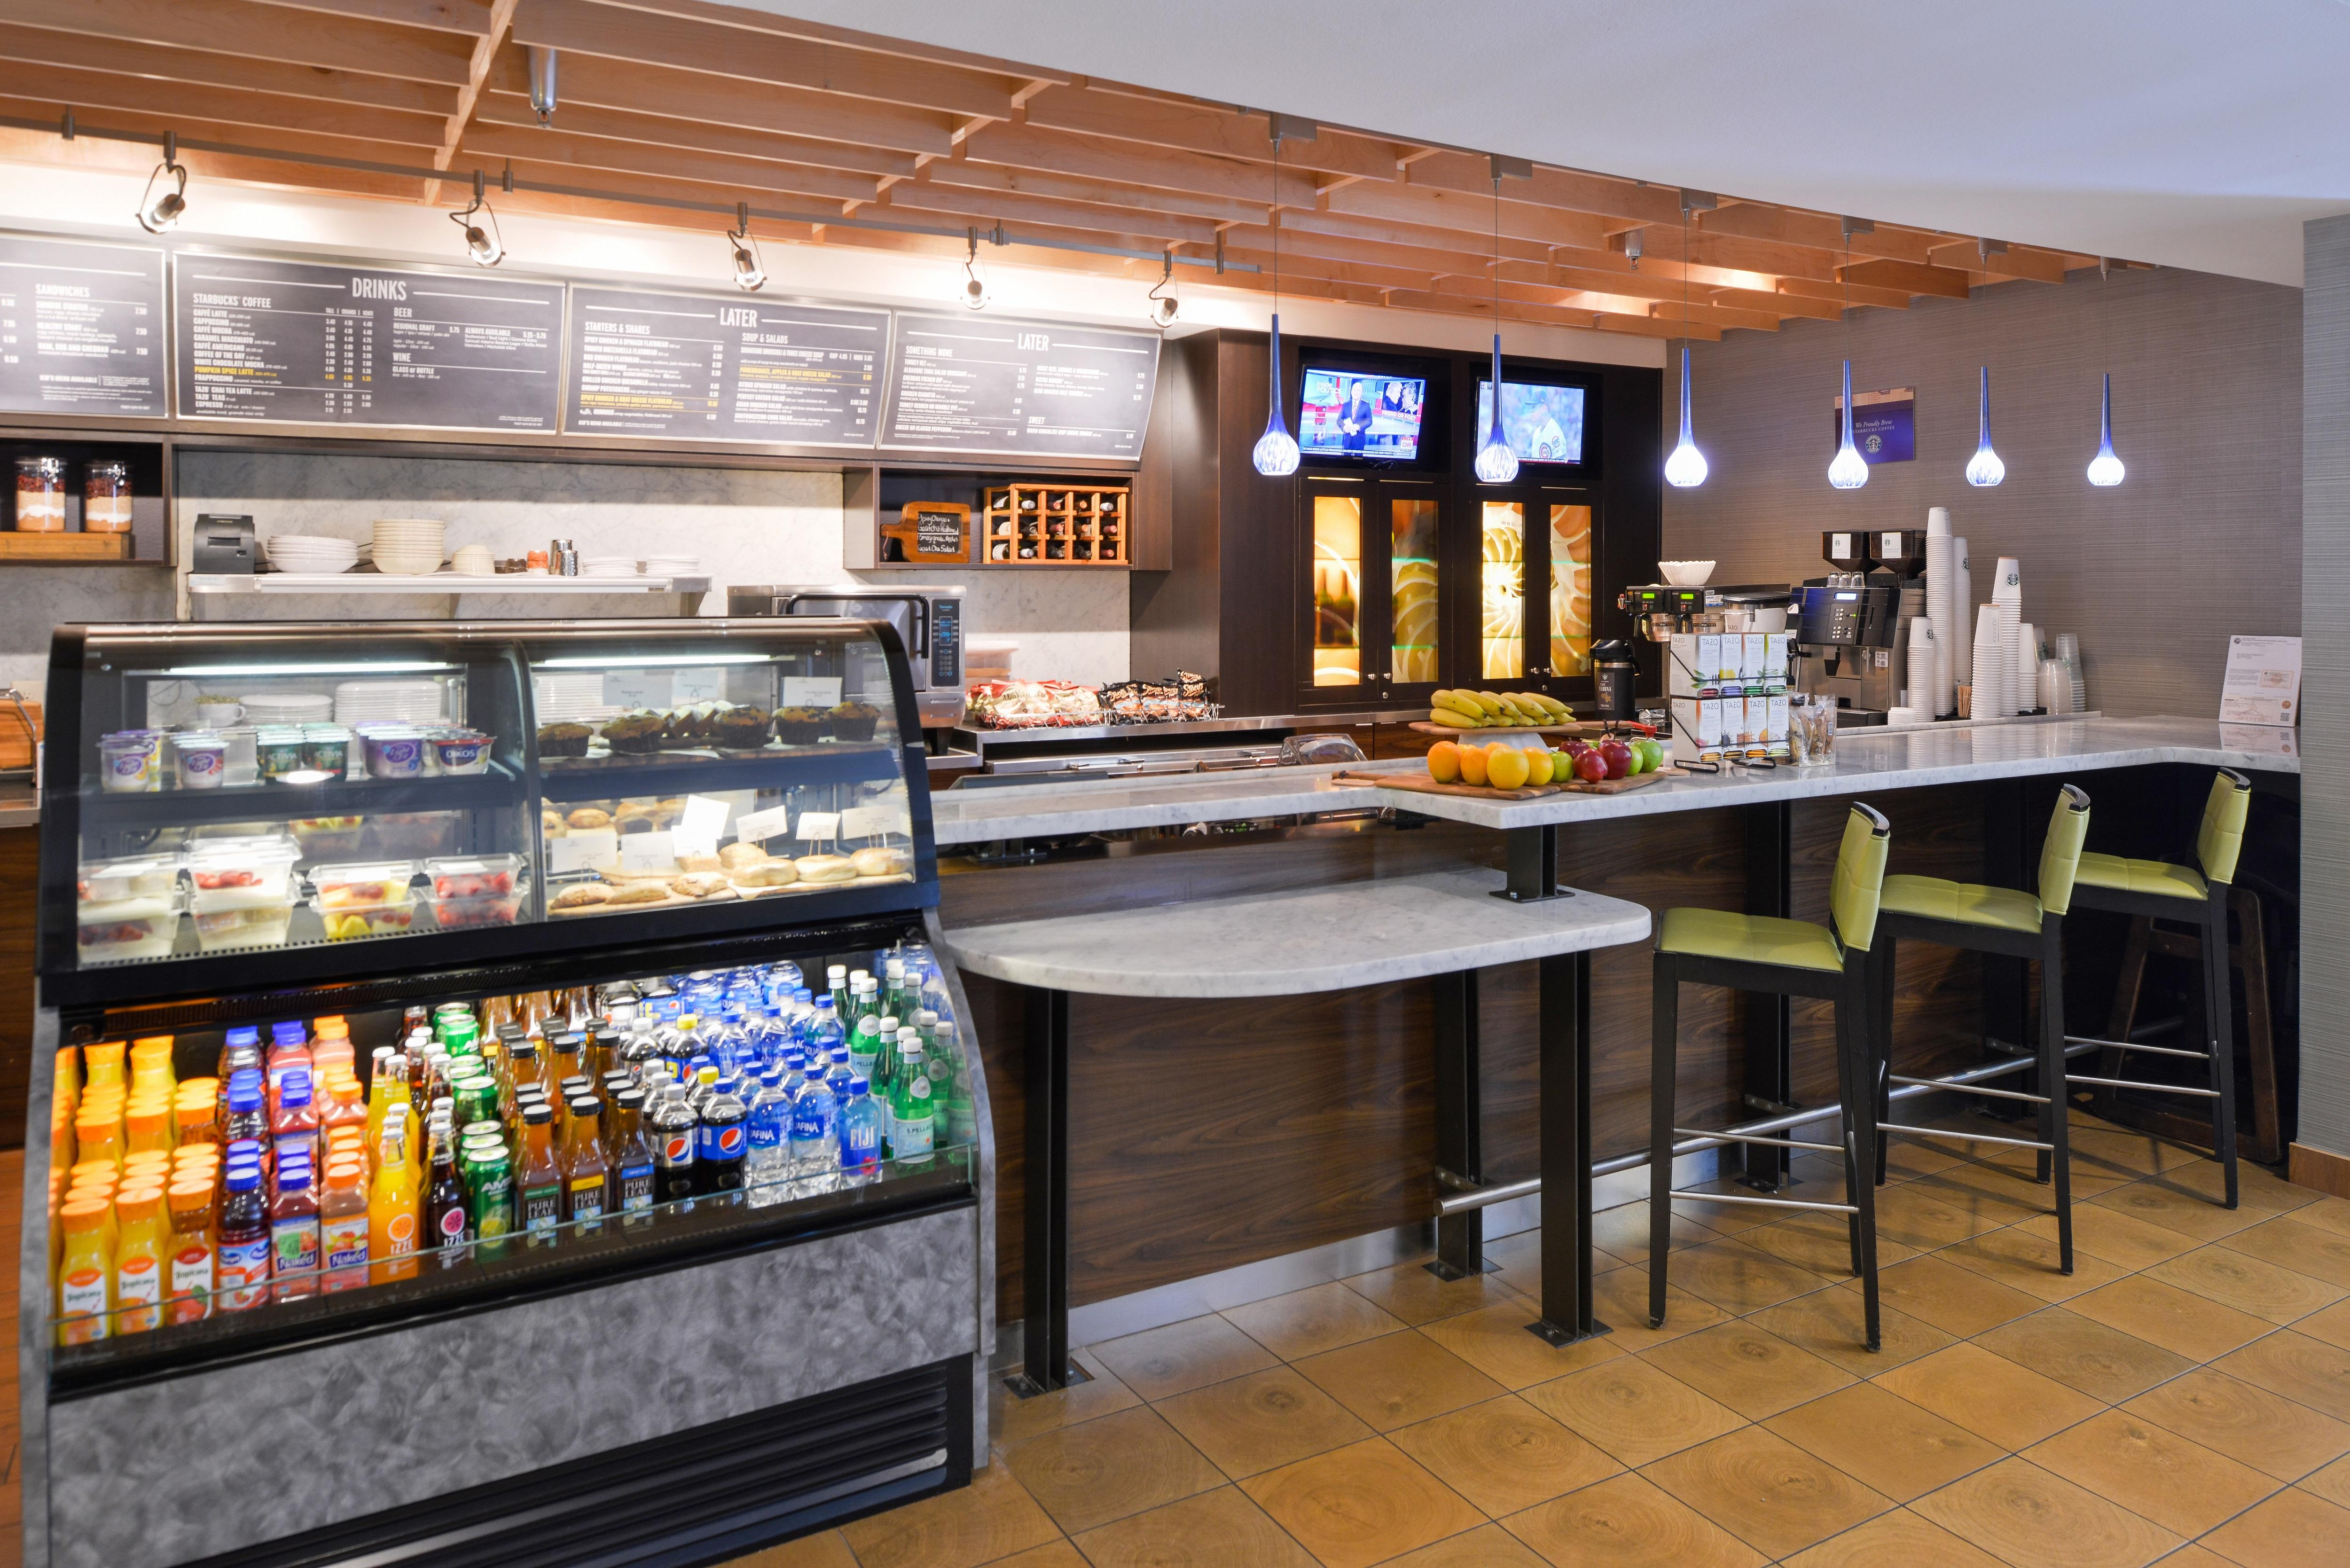 Courtyard by Marriott Tampa North/I-75 Fletcher image 6